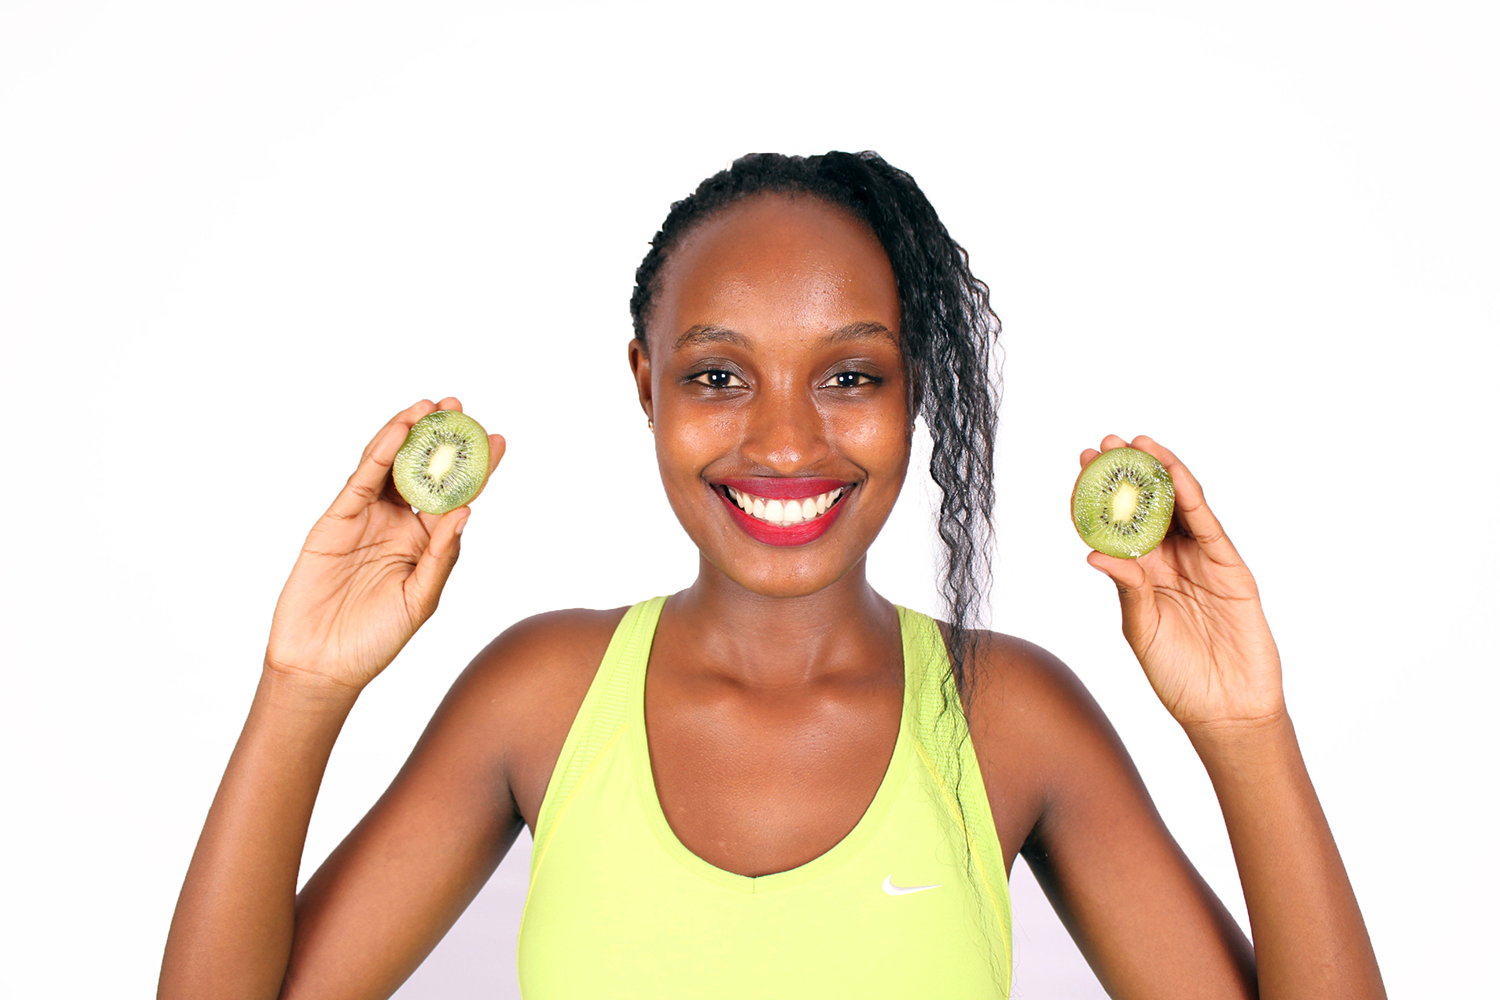 Smiling Woman Holding Two Slices of Kiwi Fruit